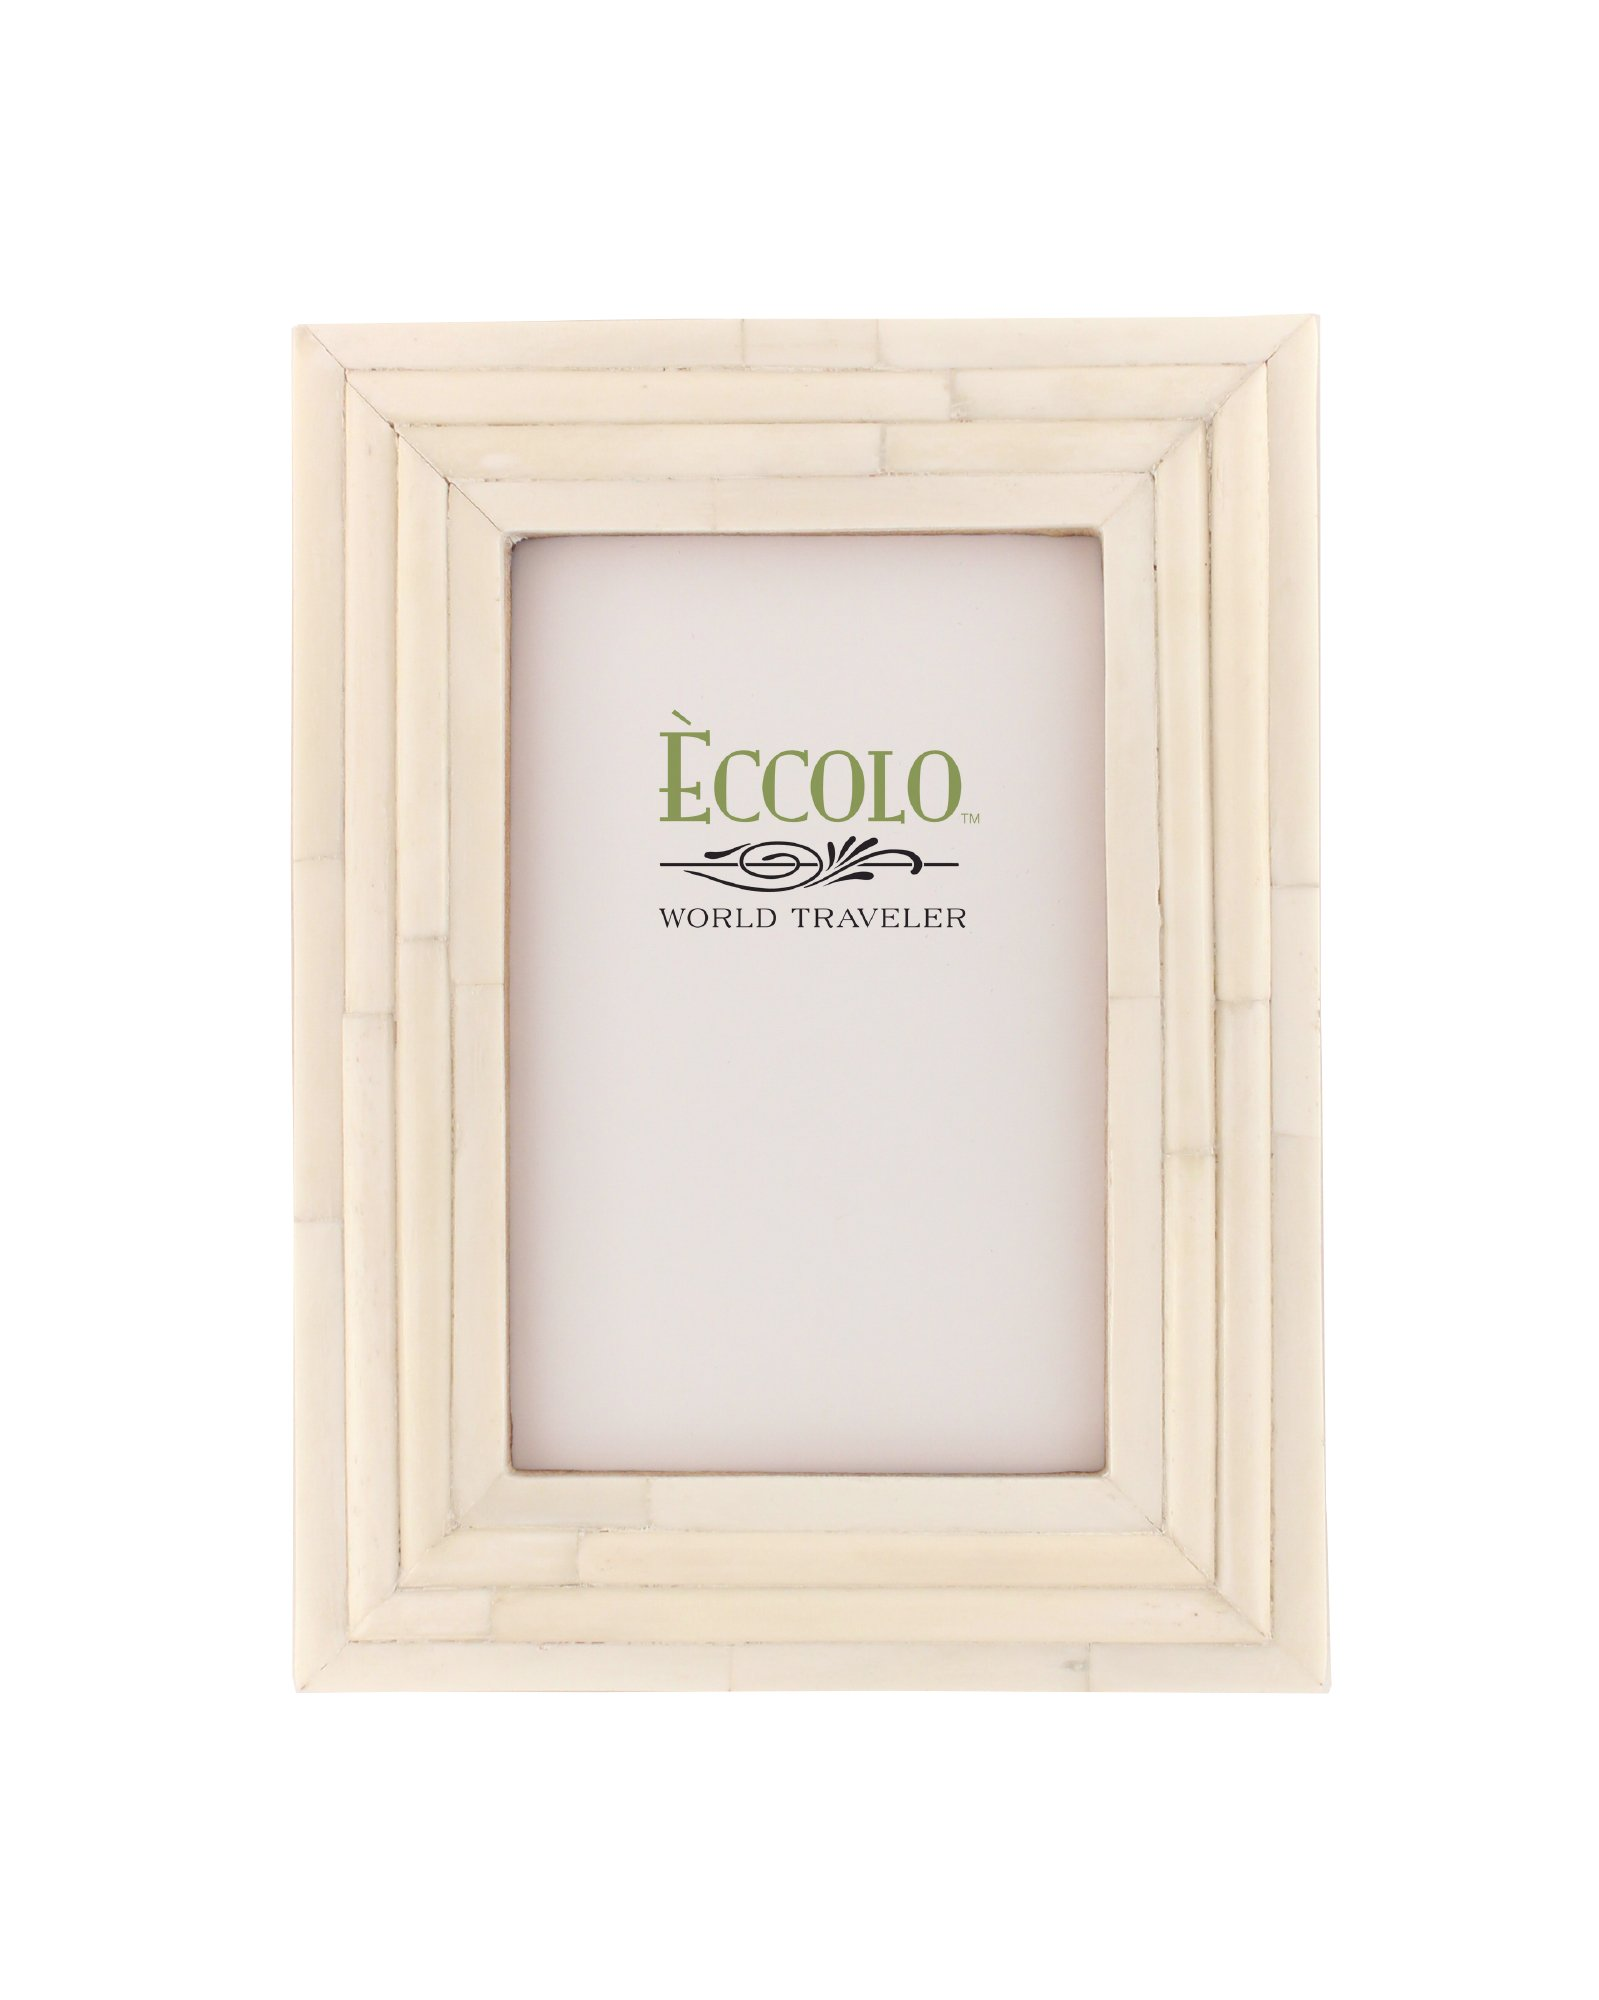 Eccolo World Traveler Naturals Collection Bangalore Raised Interior Frame, Holds 5 by 7-Inch Photo, Ivory